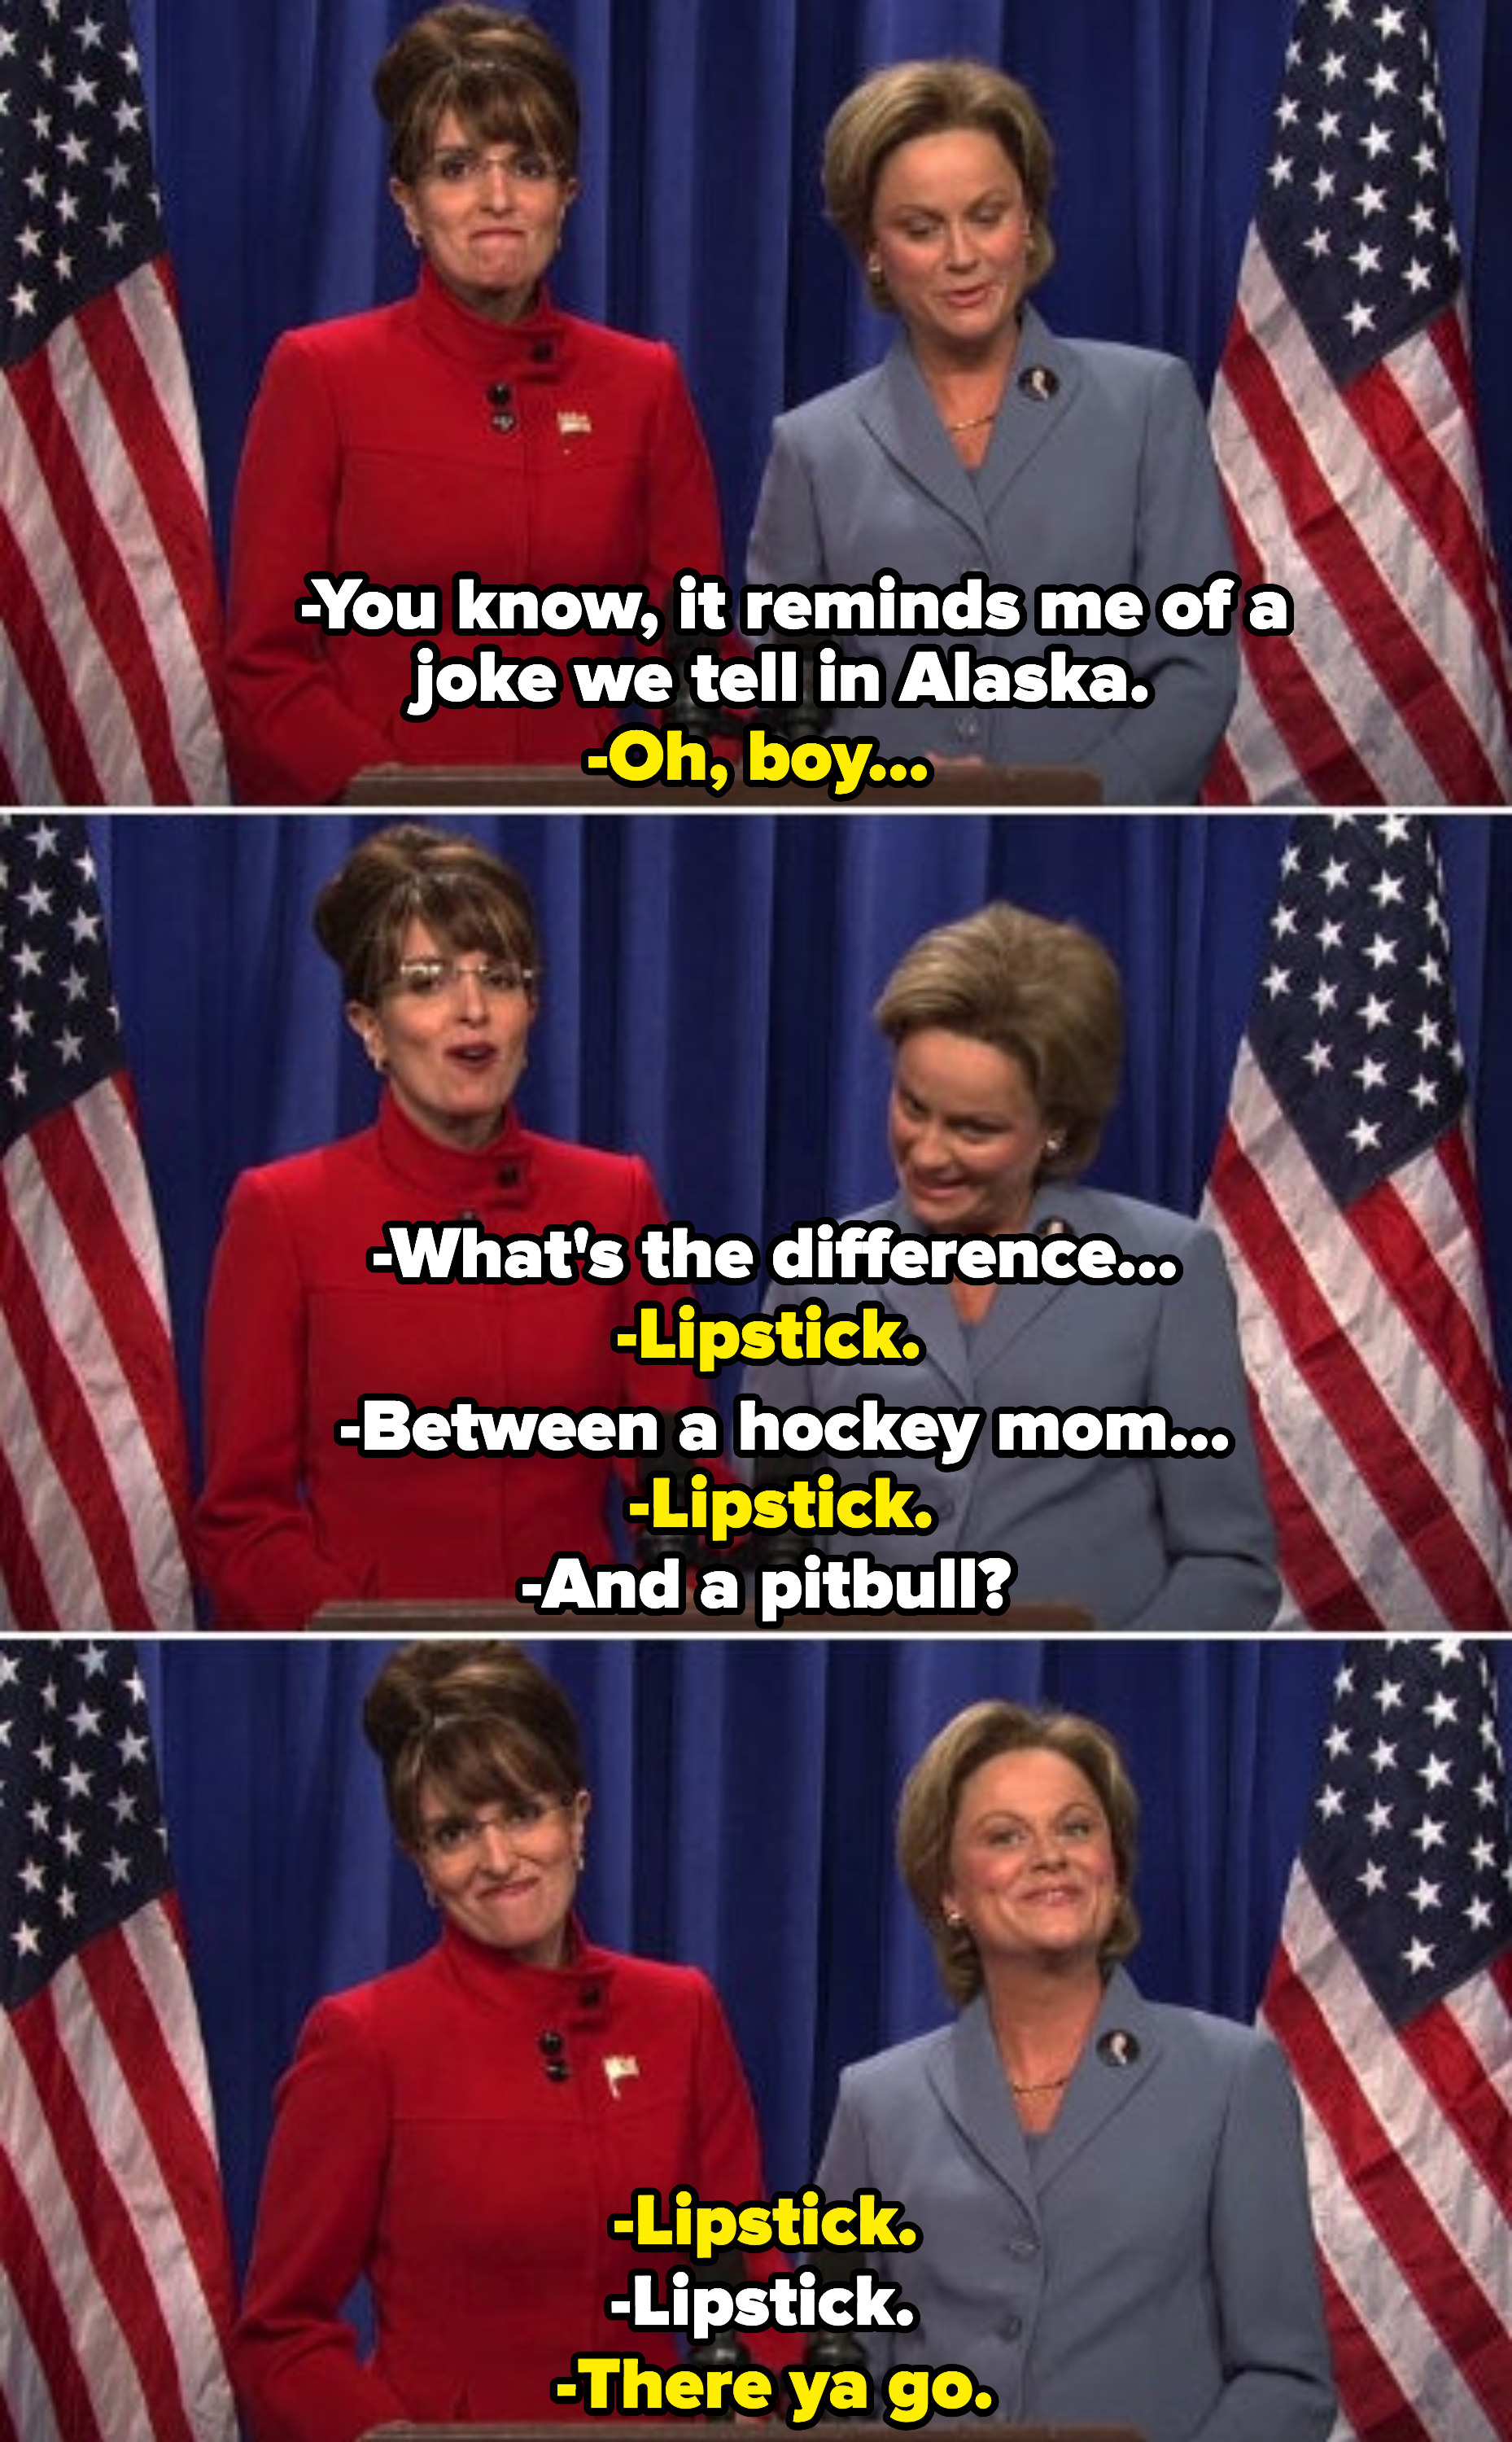 Tina Fey as Sarah Palin telling a joke, asking the difference between a hockey mom and a pitbull